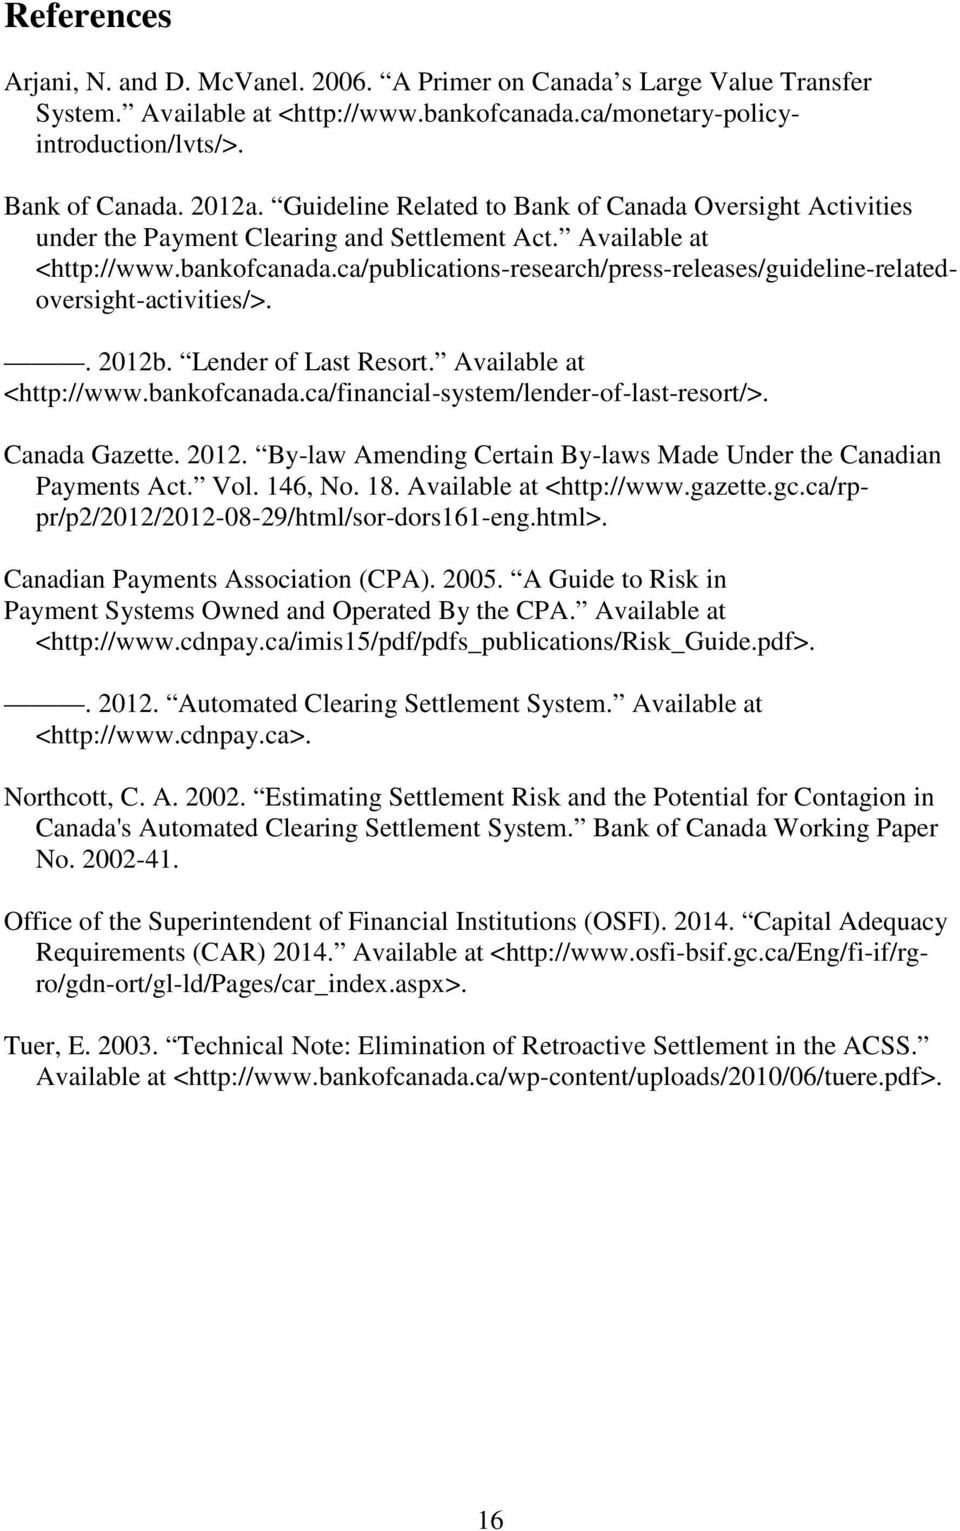 ca/publications-research/press-releases/guideline-relatedoversight-activities/>.. 2012b. Lender of Last Resort. Available at <http://www.bankofcanada.ca/financial-system/lender-of-last-resort/>.